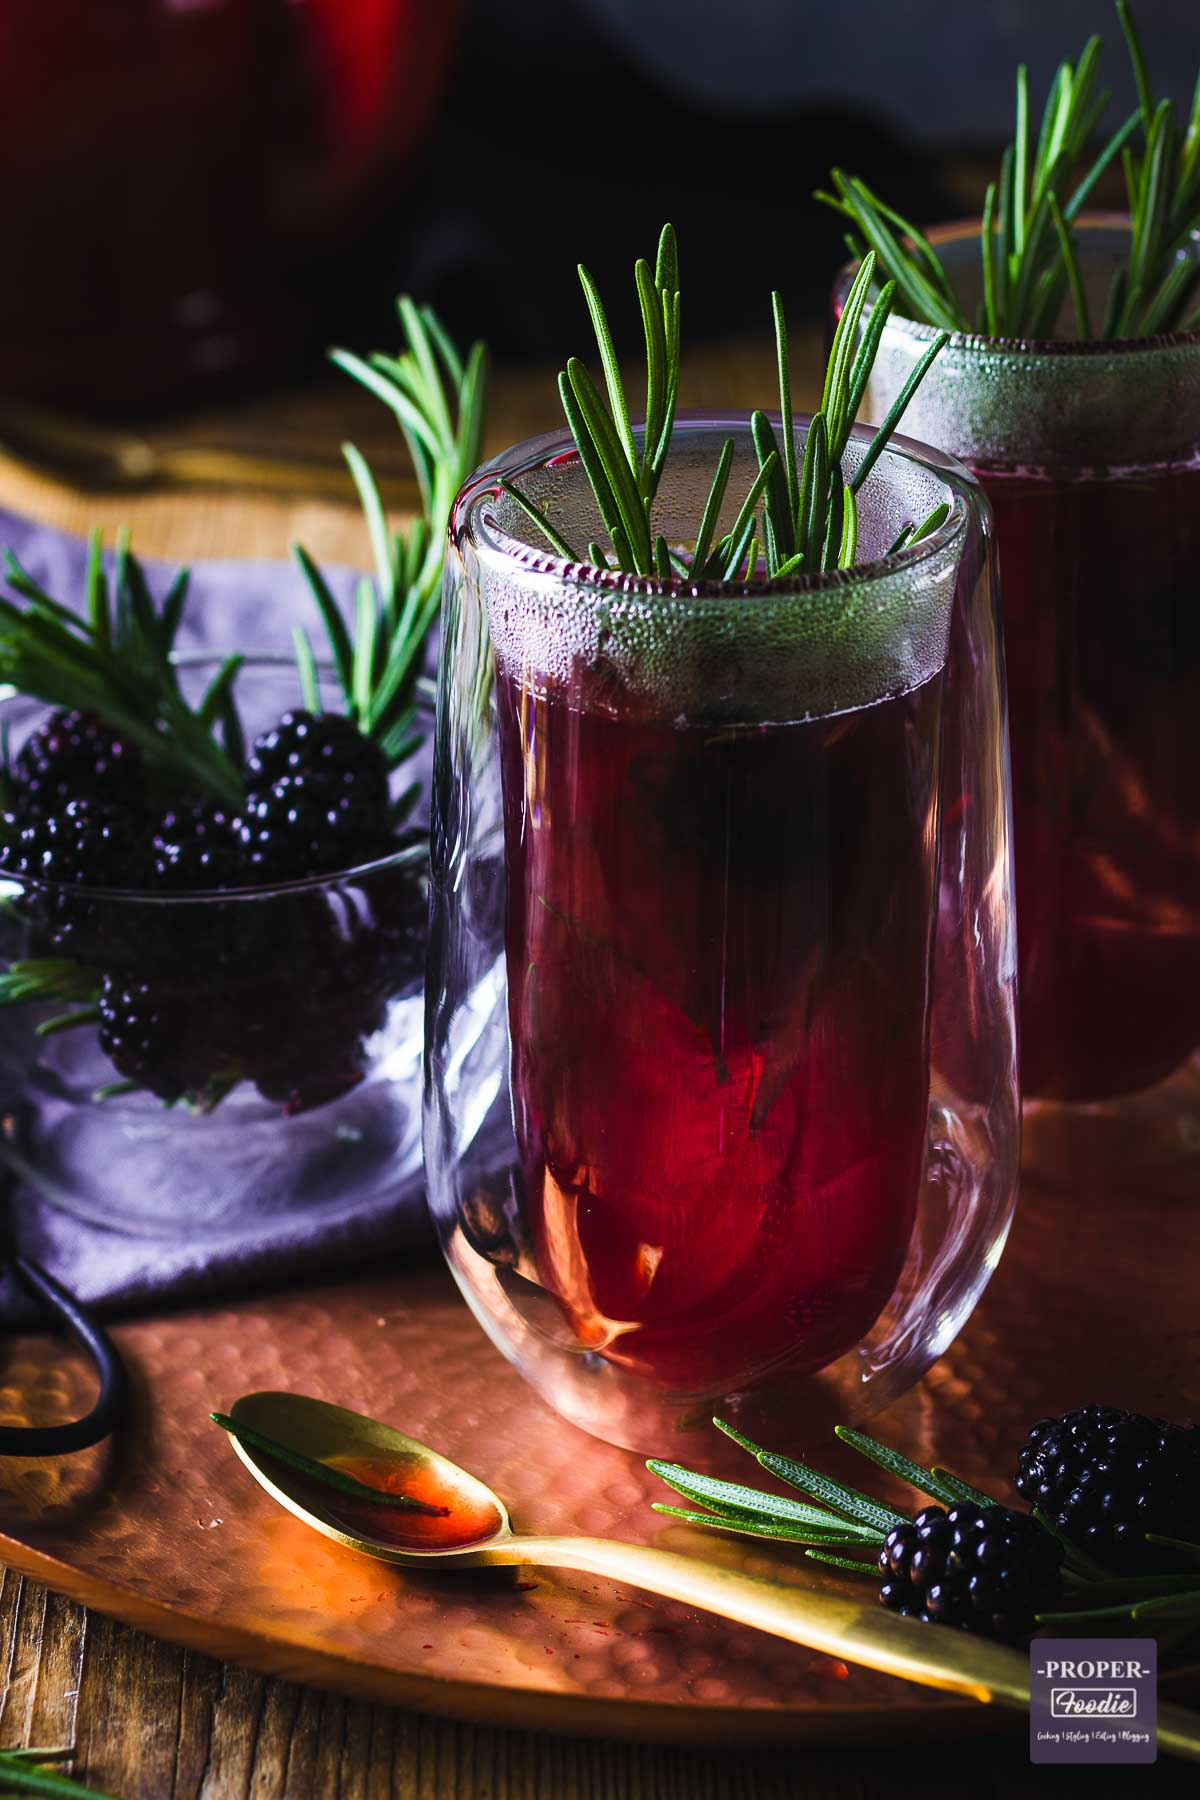 a purple and steaming, double walled glass of sloe gin hot toddy decorated with a sprig of rosemary and a second glass in the background.